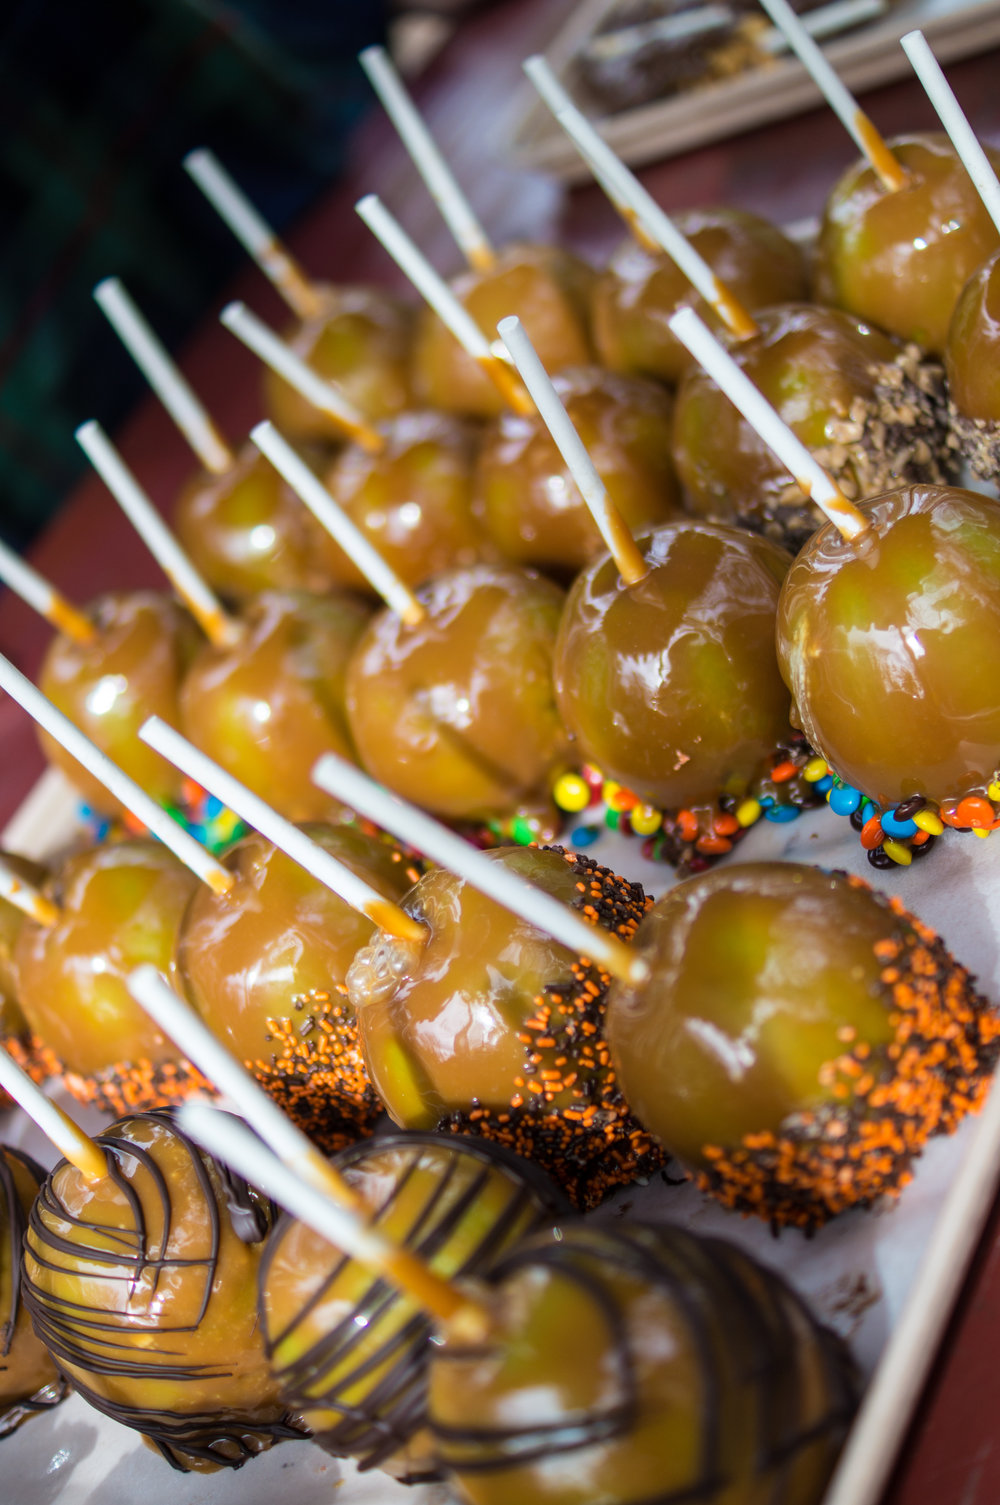 Caramel Apples from the Village Bakery